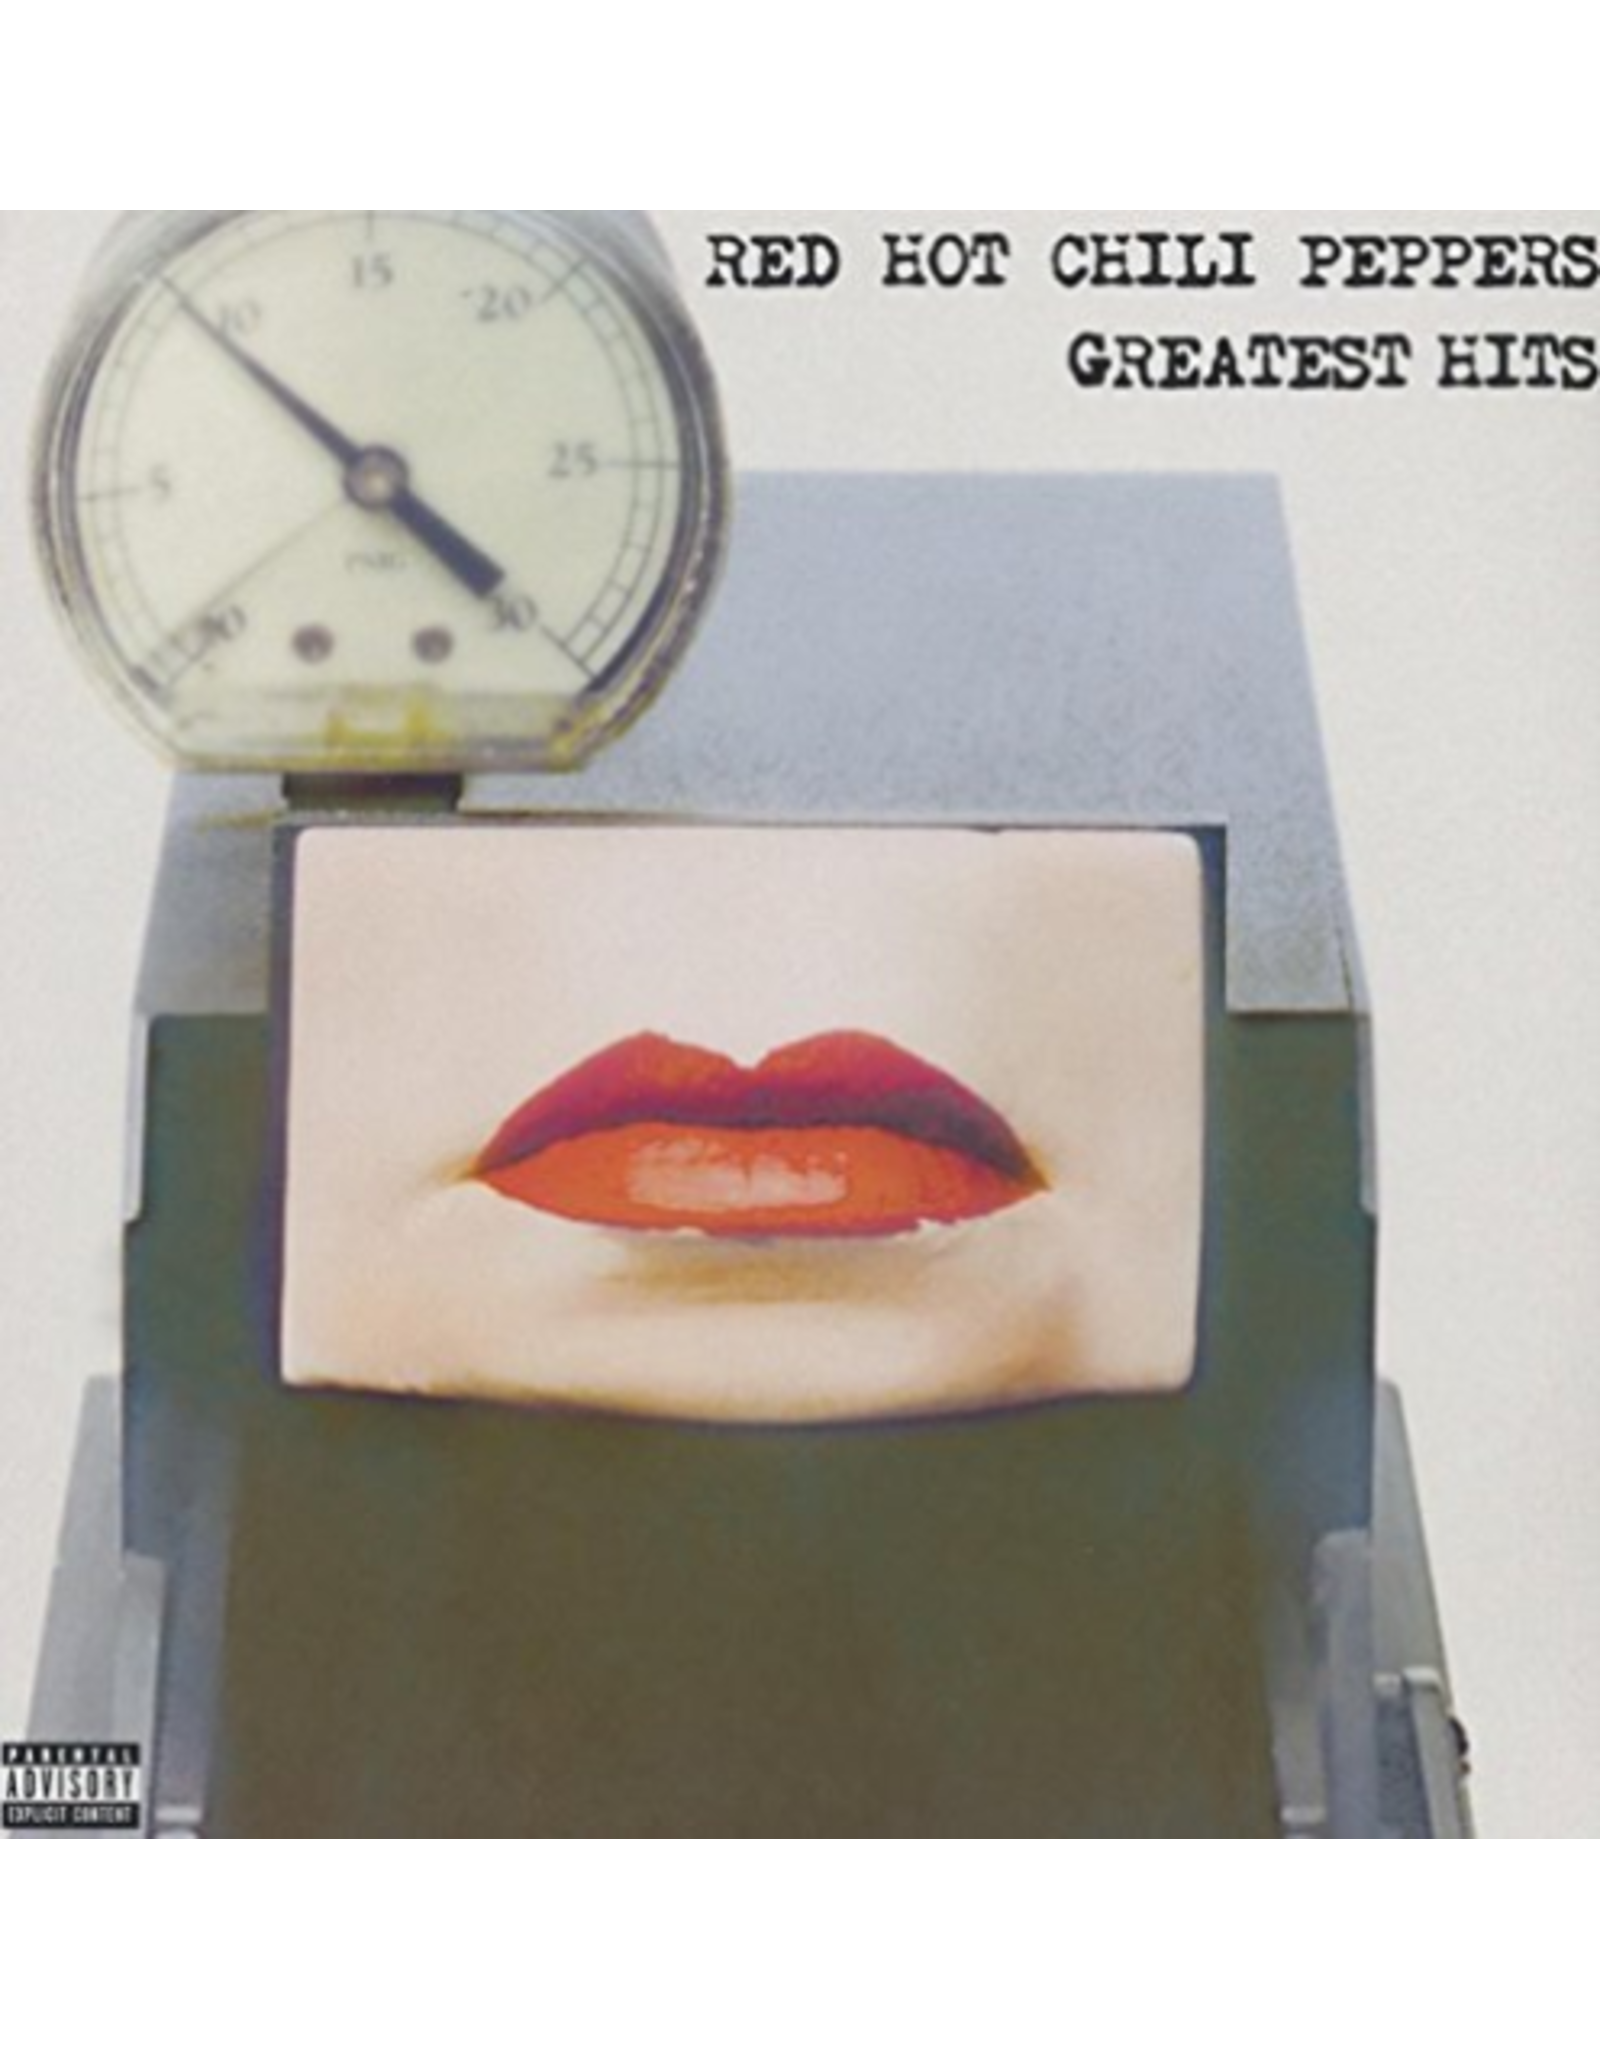 Red Hot Chili Peppers - GH LP